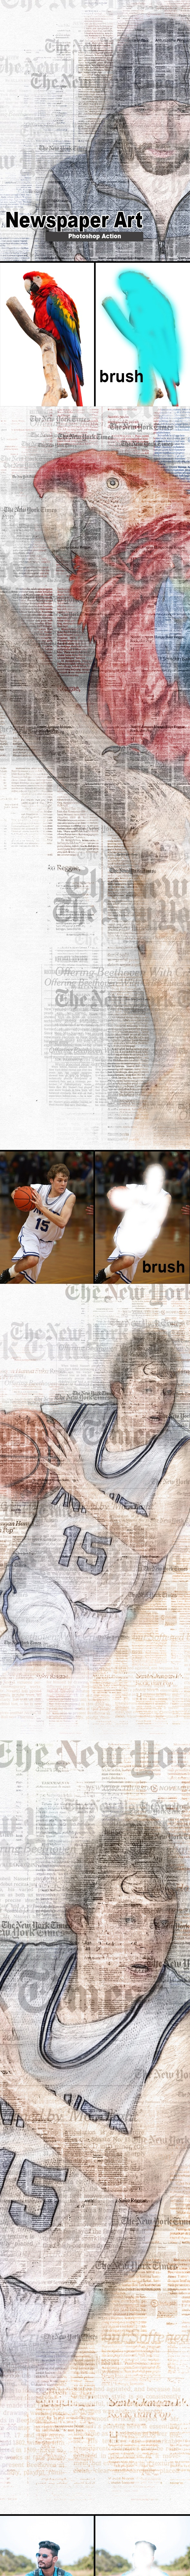 Amazing Newspaper Art Photoshop Action - Photo Effects Actions